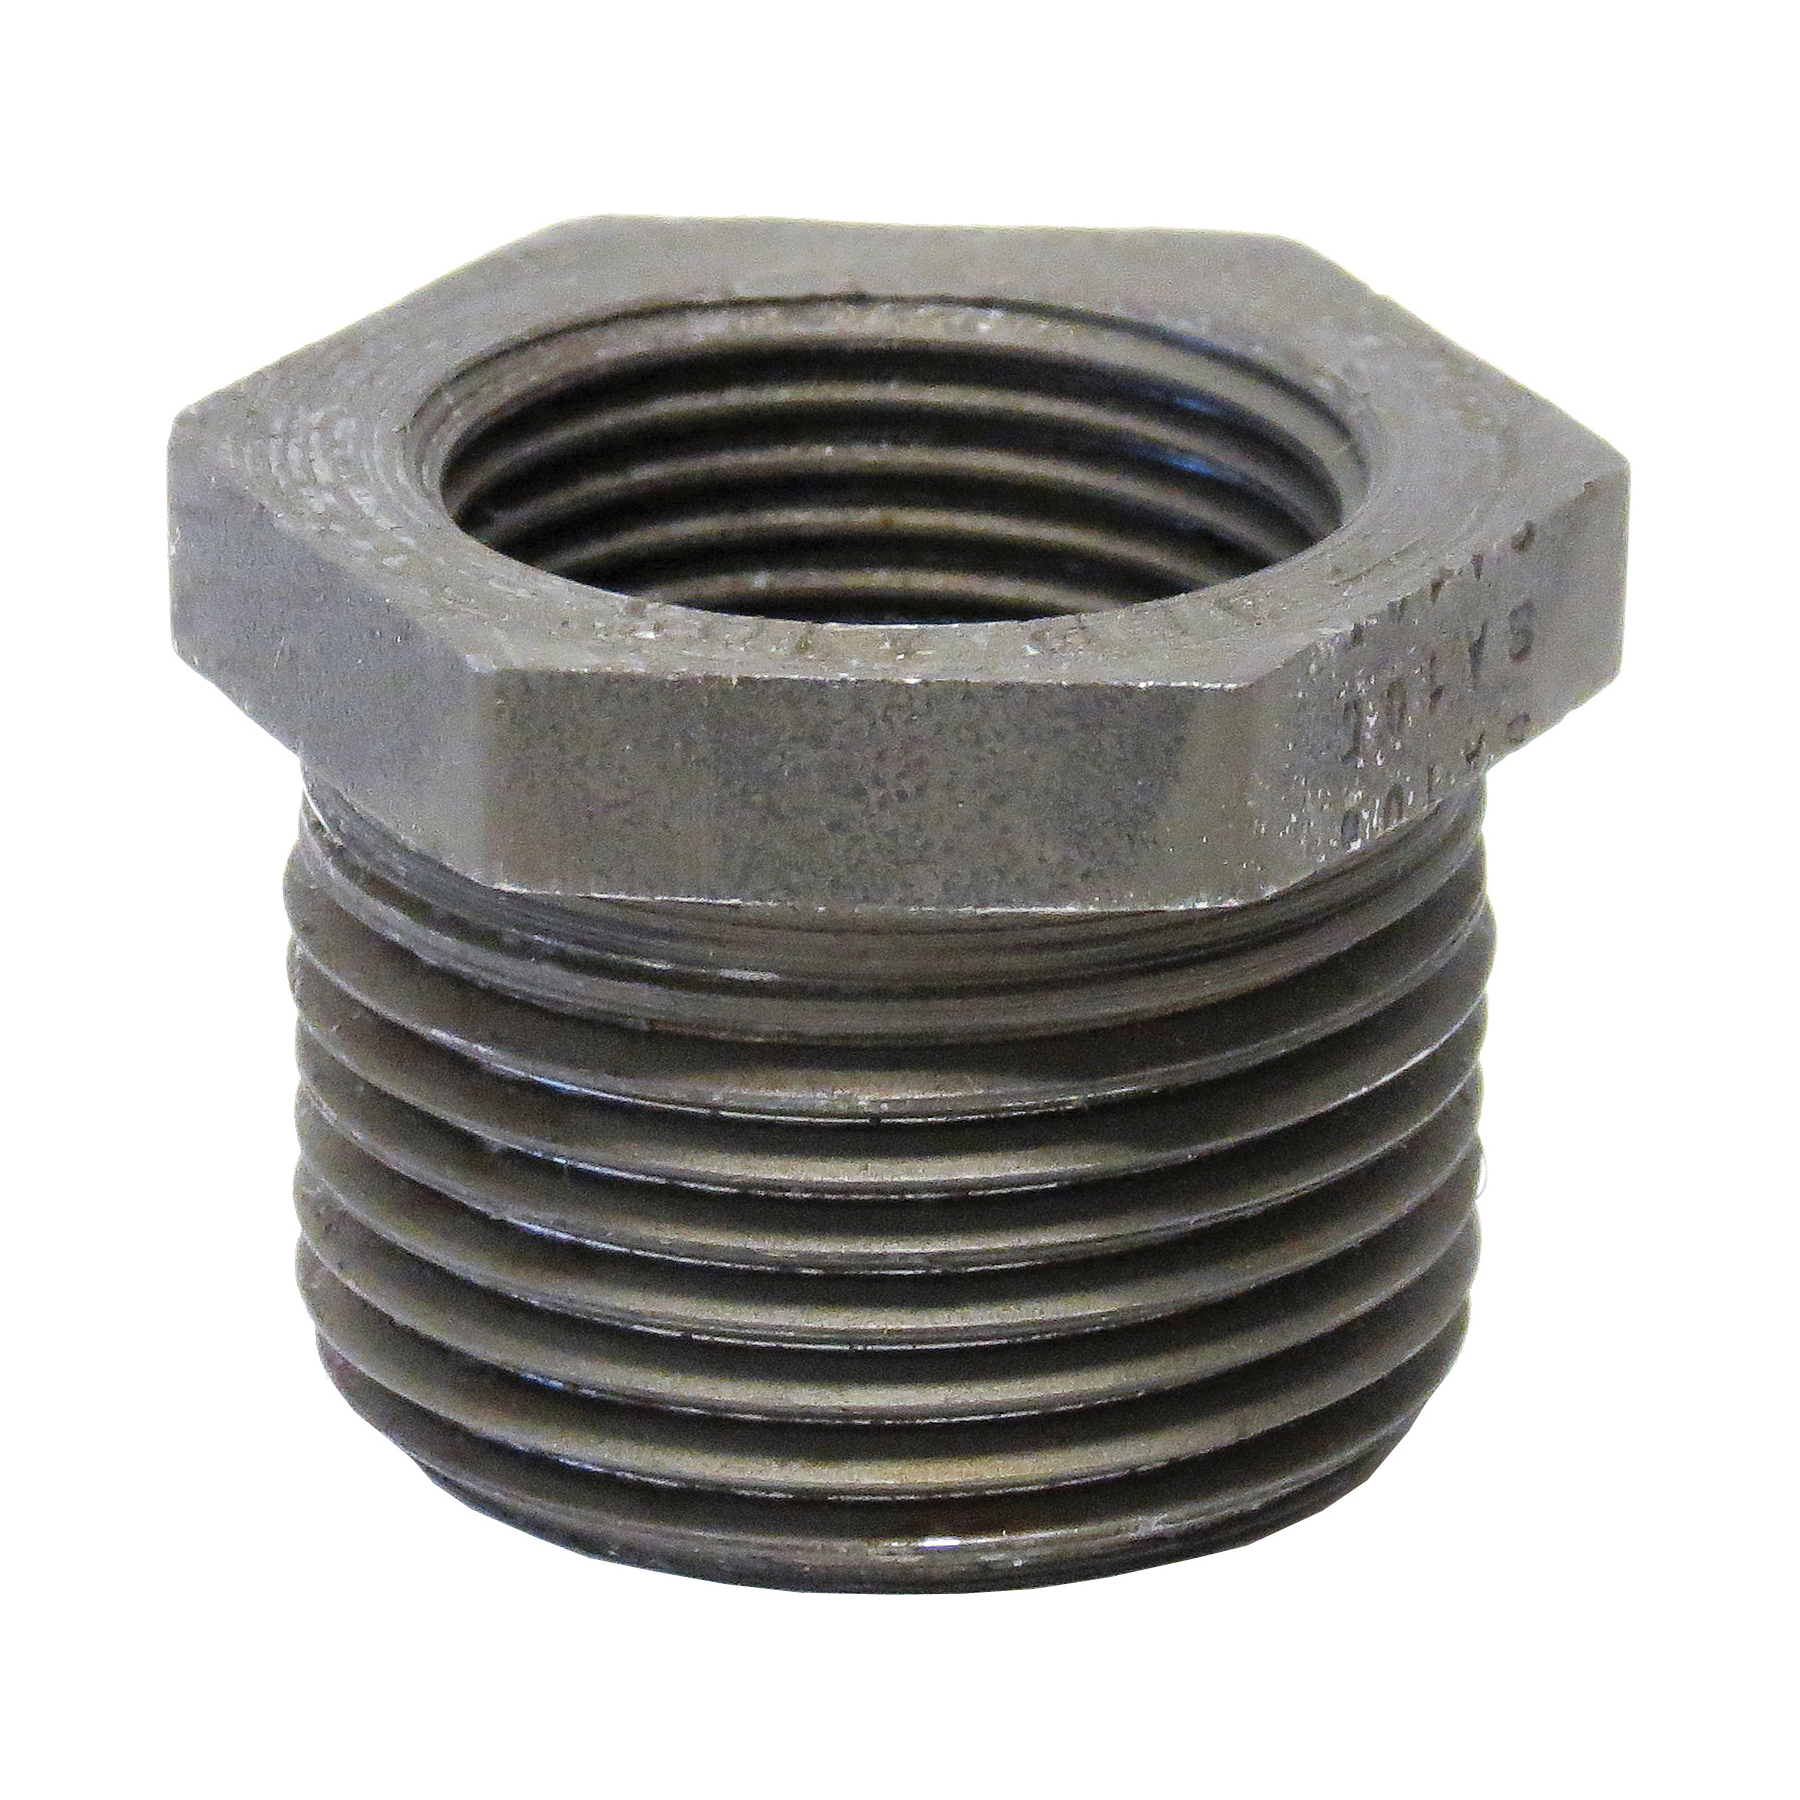 Anvil® 0361330806 FIG 2139 Hex Head Pipe Bushing, 3/4 x 3/8 in Nominal, MNPT x FNPT End Style, 3000 lb, Steel, Black Oxide, Domestic